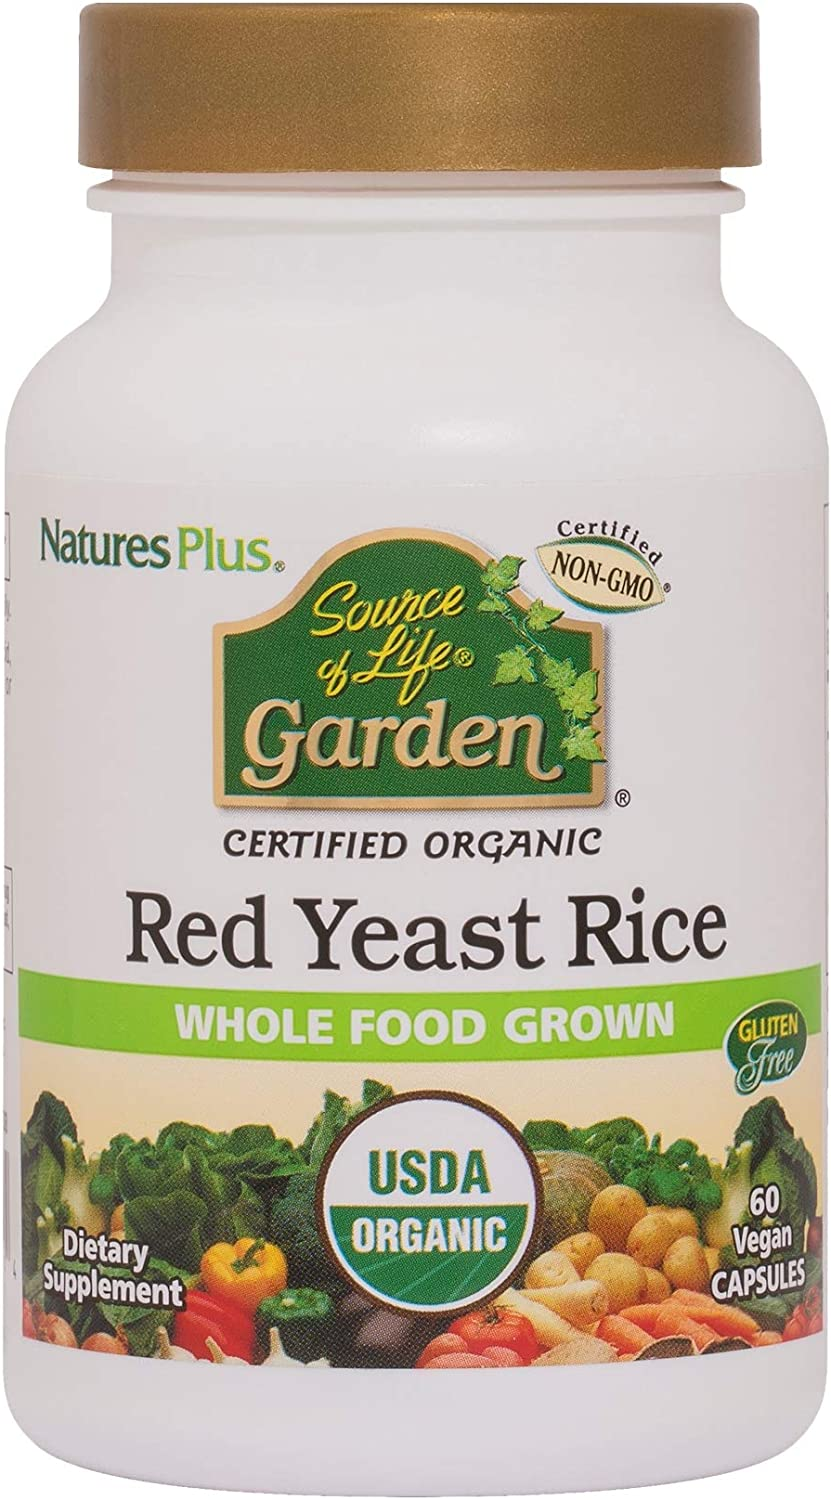 NaturesPlus Source of Life Garden Certified Organic Red Yeast Rice - 600 mg, 60 Vegan Capsules - Nutritional Support For Overall Well-Being - Vegetarian, Gluten-Free - 60 Servings